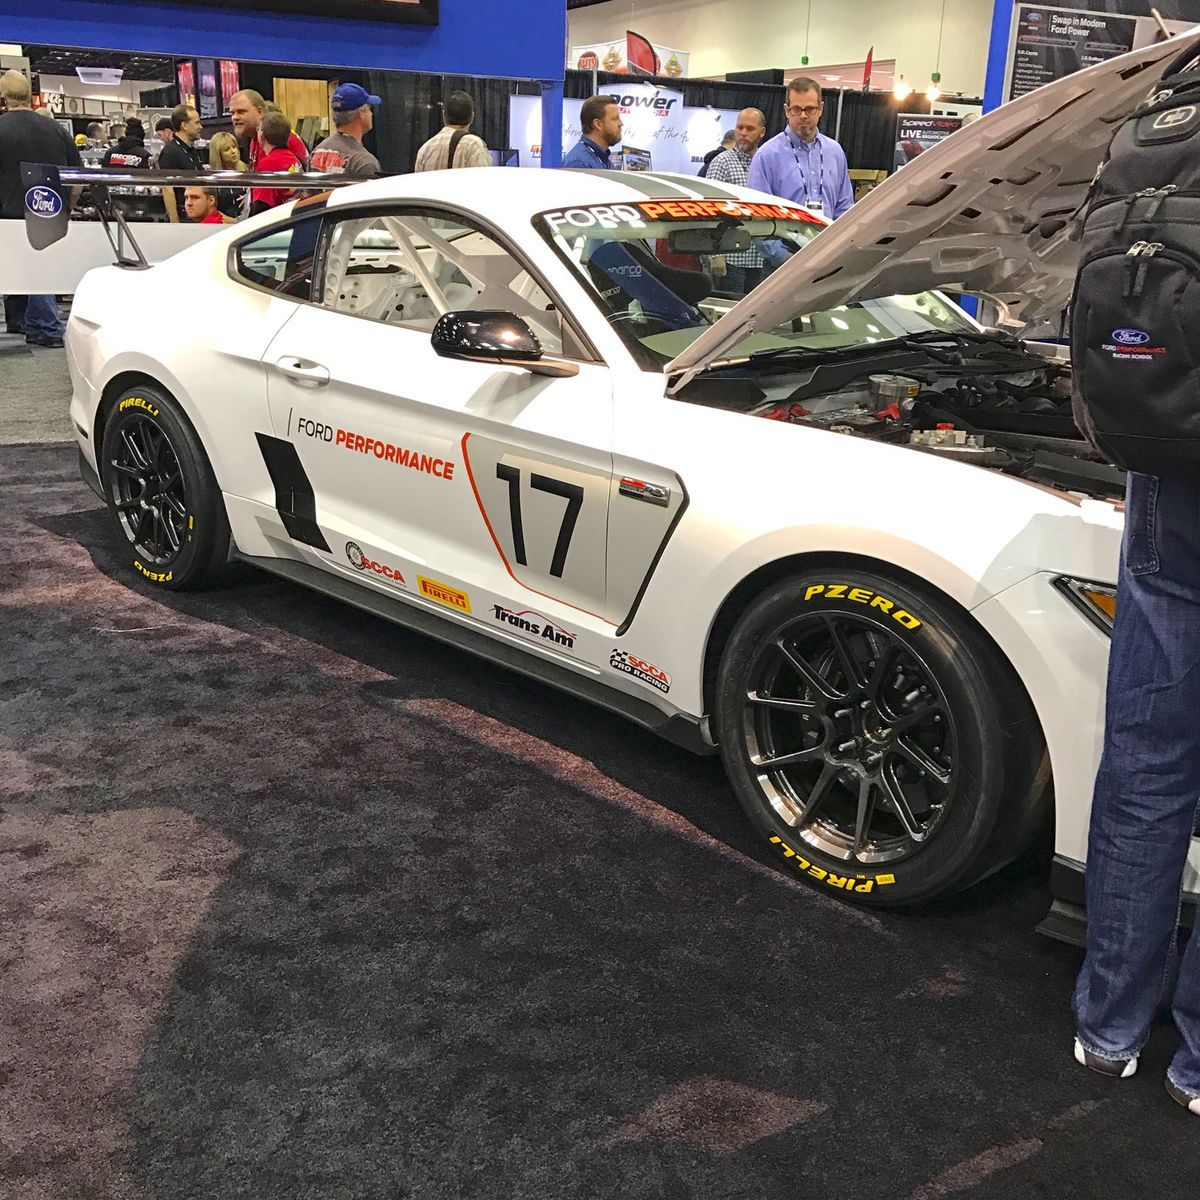 2017 Ford Mustang | Ford Performance Race-Ready Shelby FP350S Mustang on Forgeline One Piece Forged Monoblock GS1R Wheels